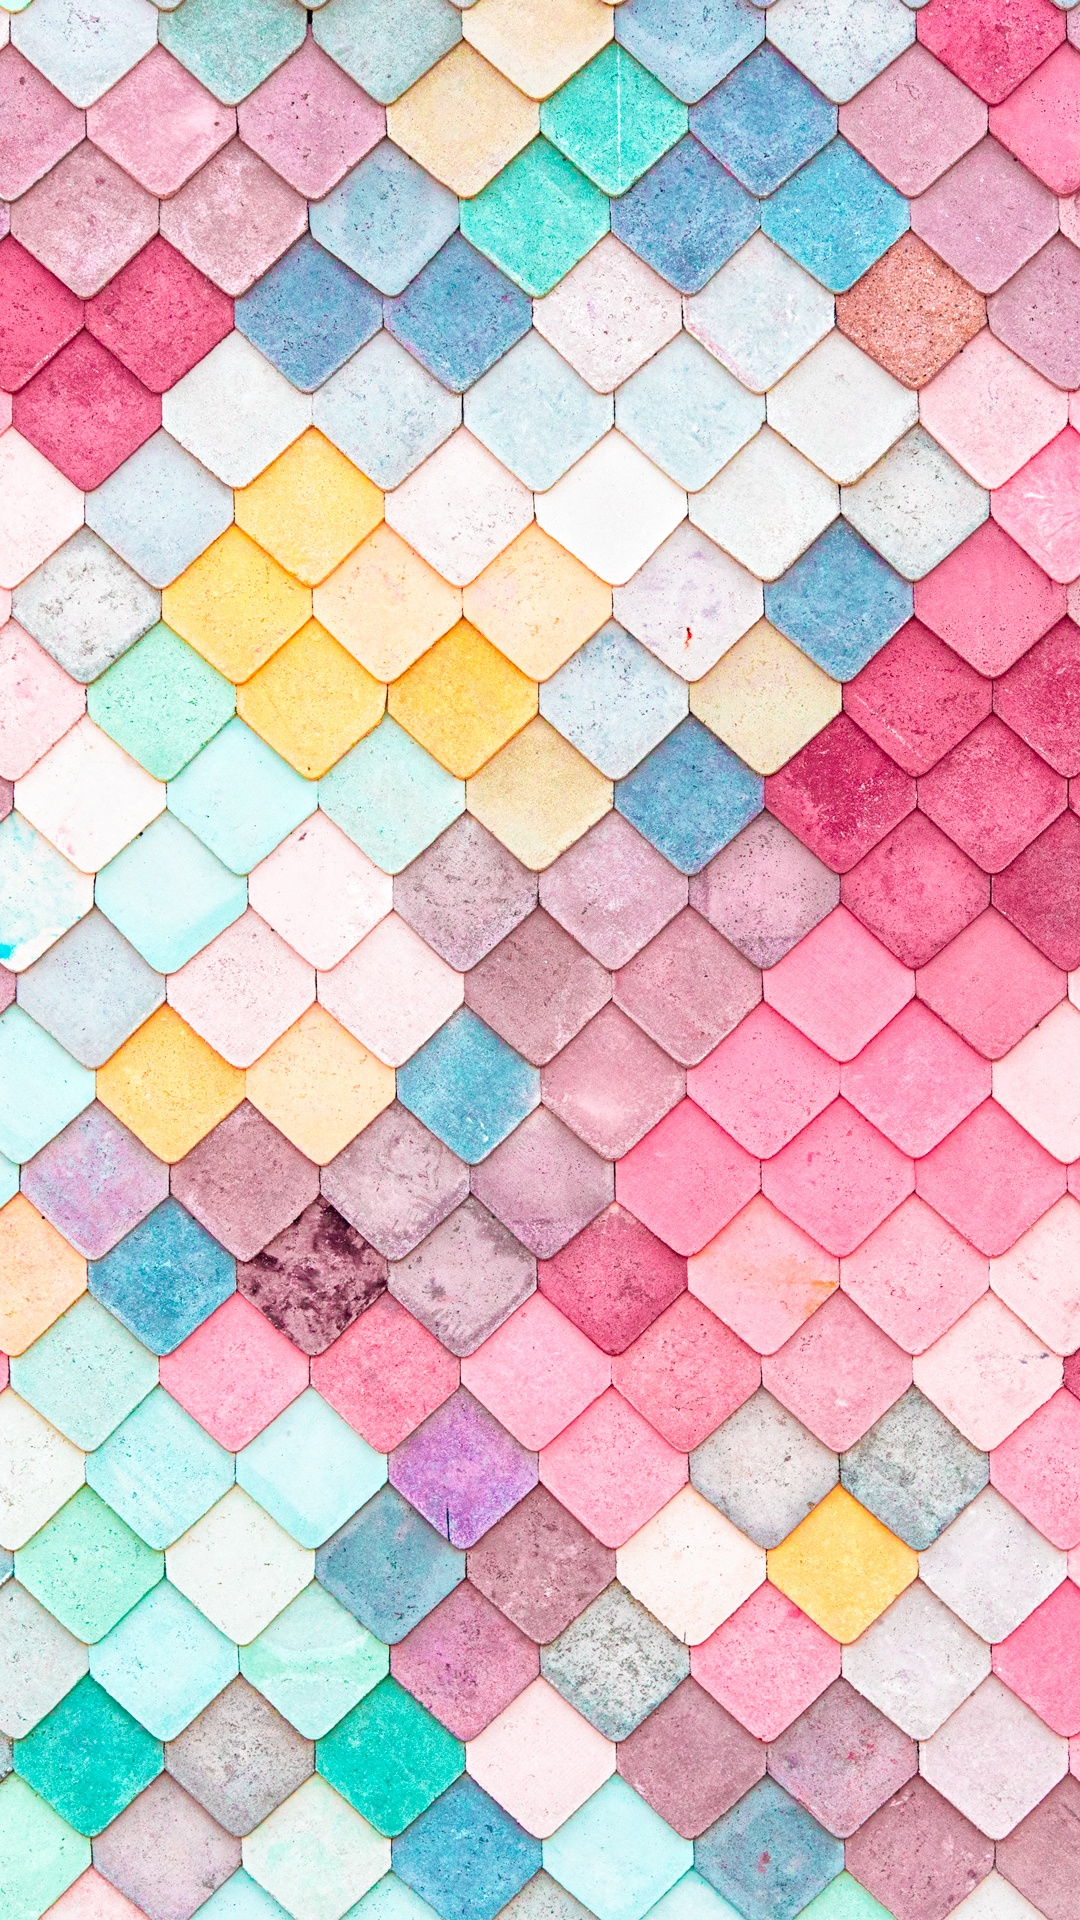 Colorful-Roof-Tiles-Pattern-iPhone-Plus-HD-wallpaper-wp3404041